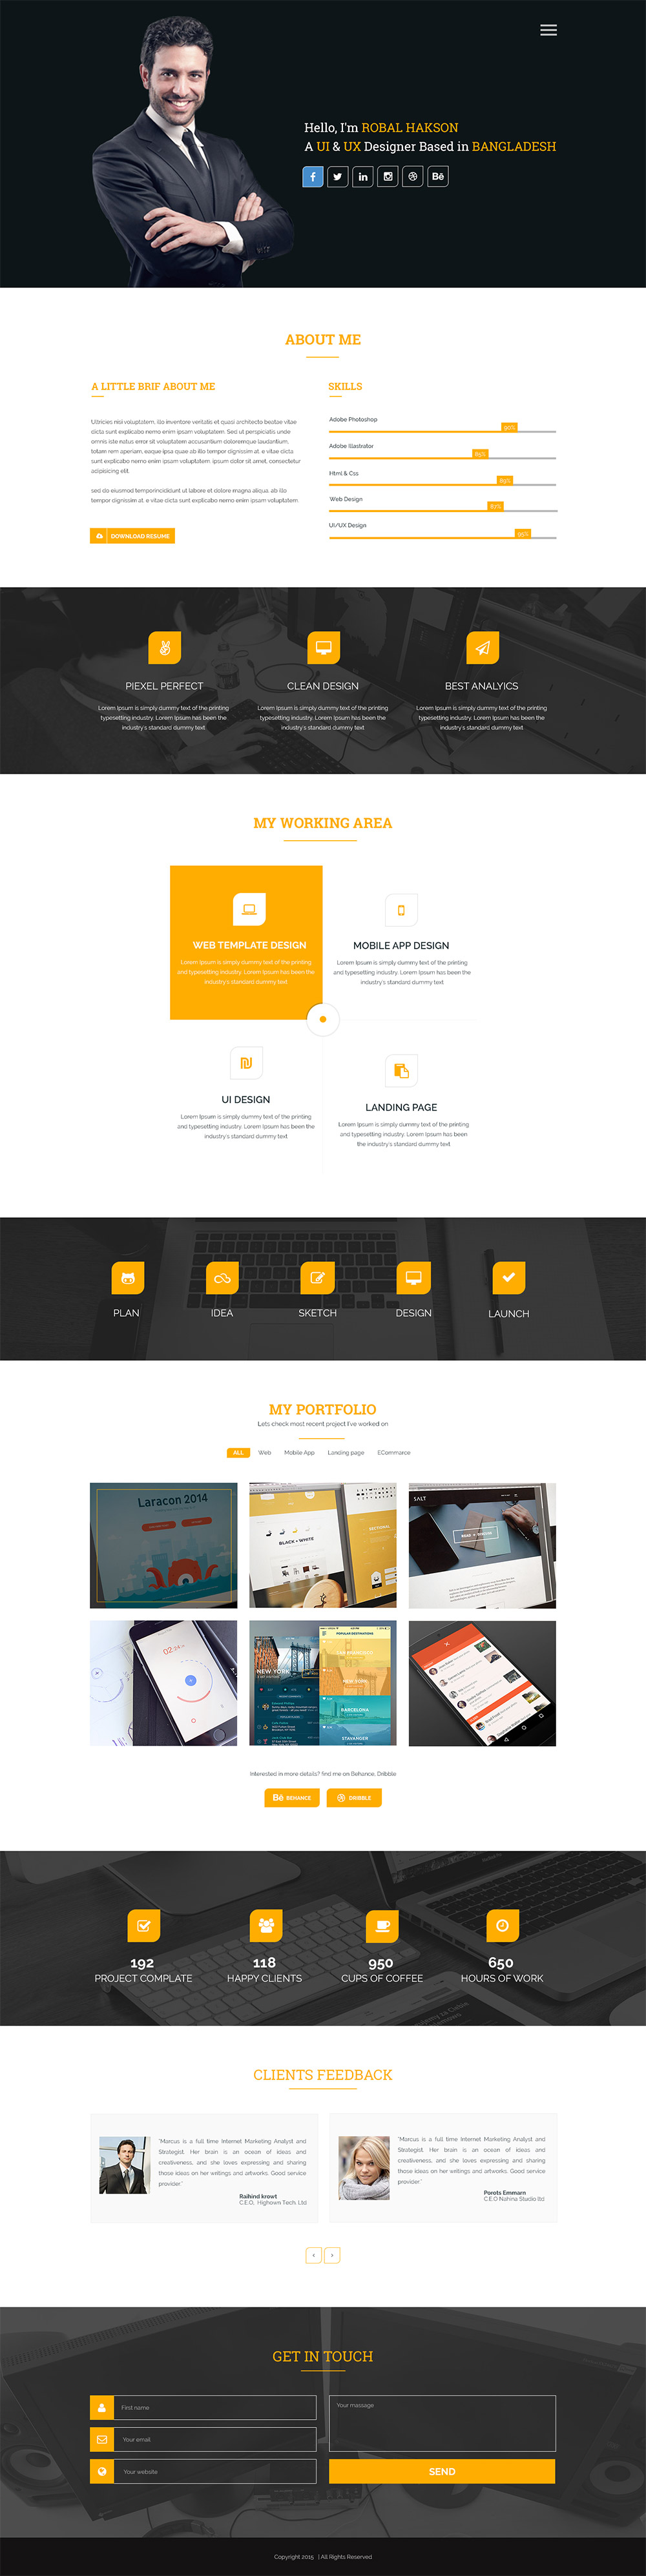 clean one page corporate portfolio website template free psd download psd. Black Bedroom Furniture Sets. Home Design Ideas